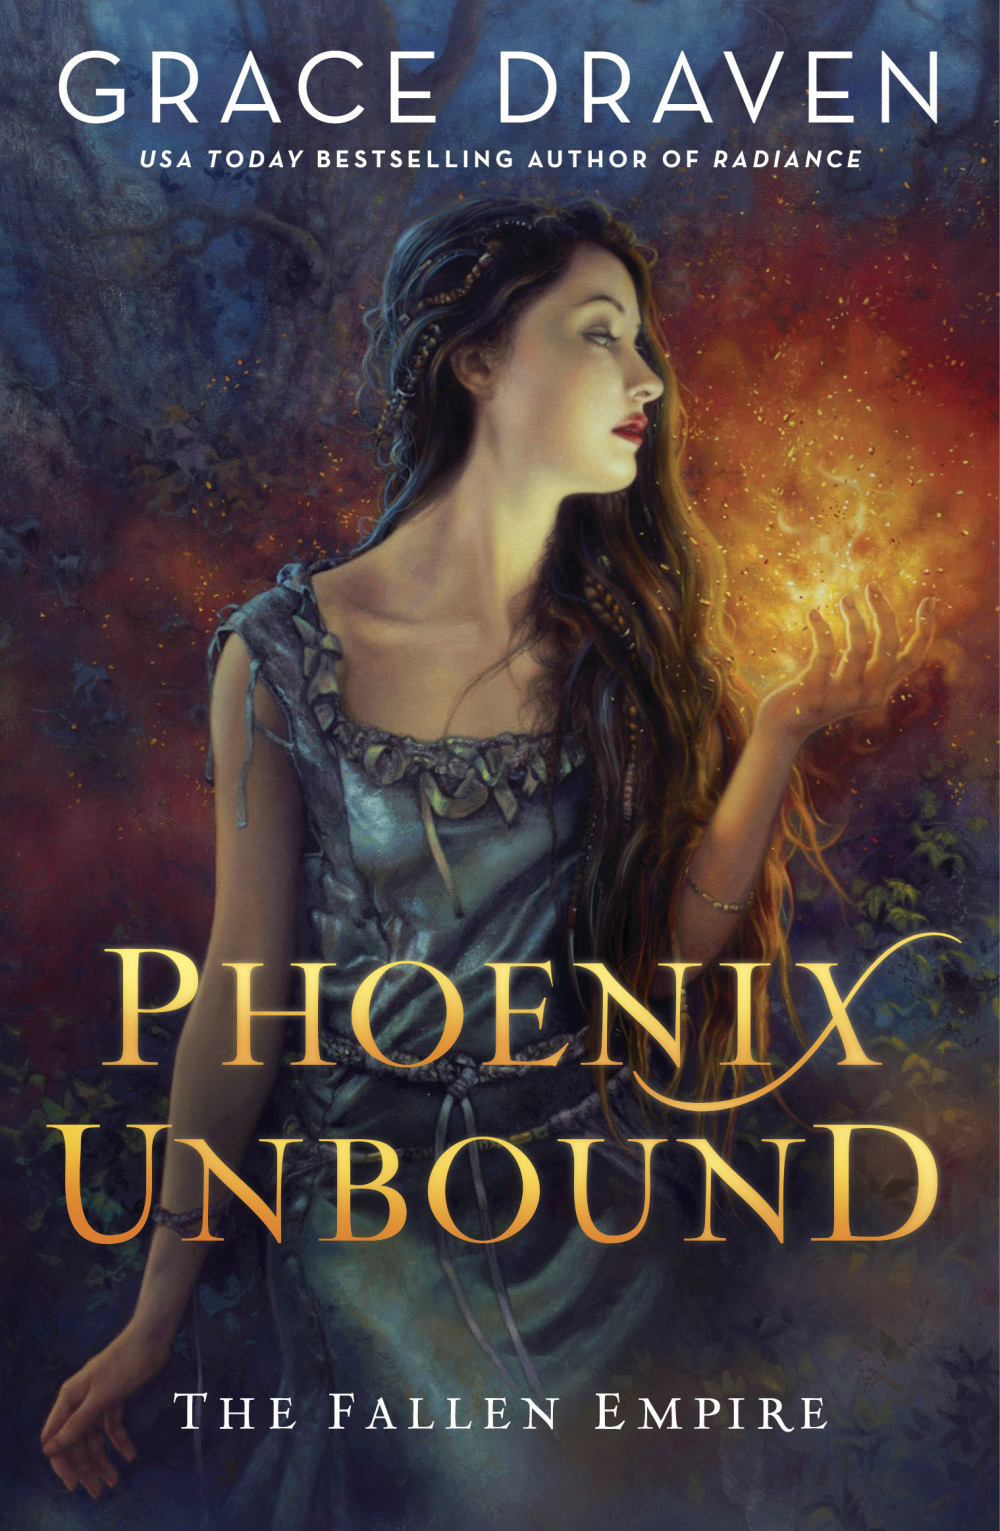 Phoenix Unbound Is A Fiery Ride From Captivity To Freedom And Romance